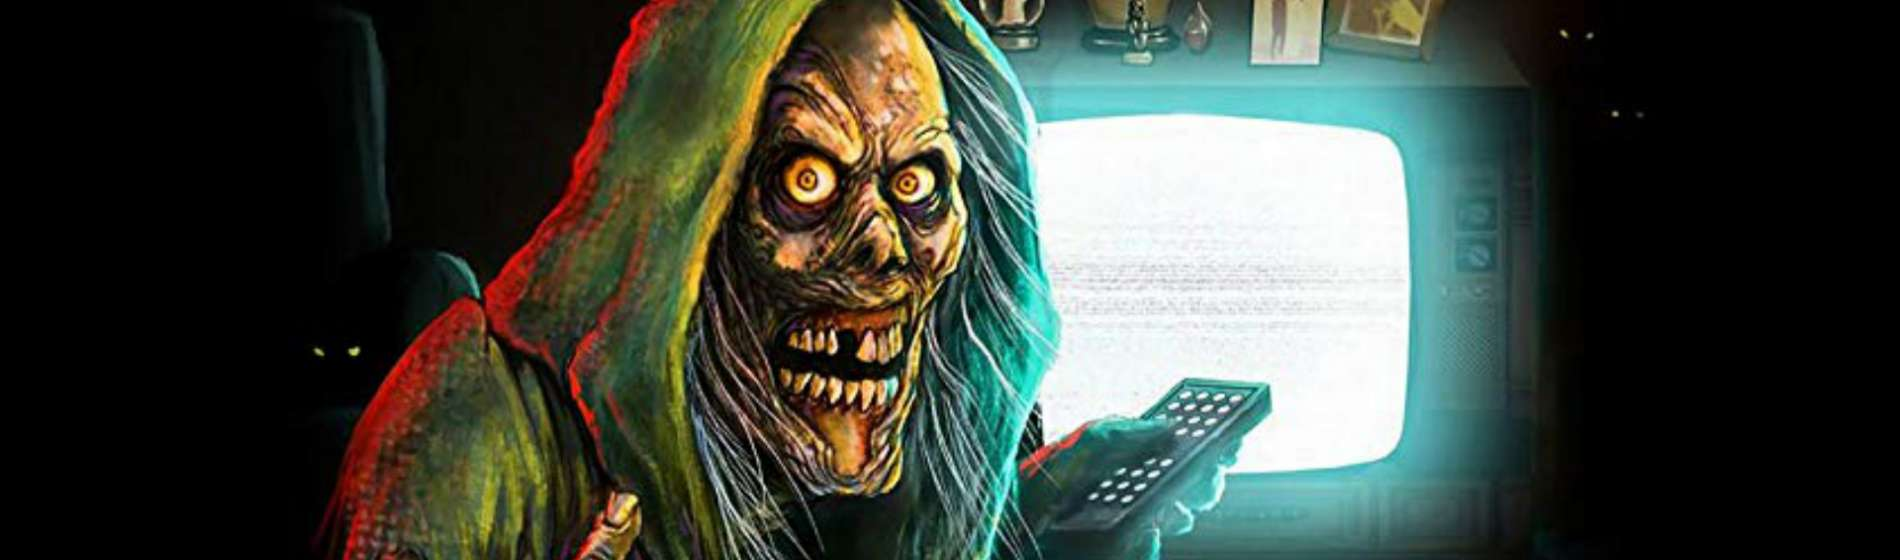 Creepshow-Poster-Feature